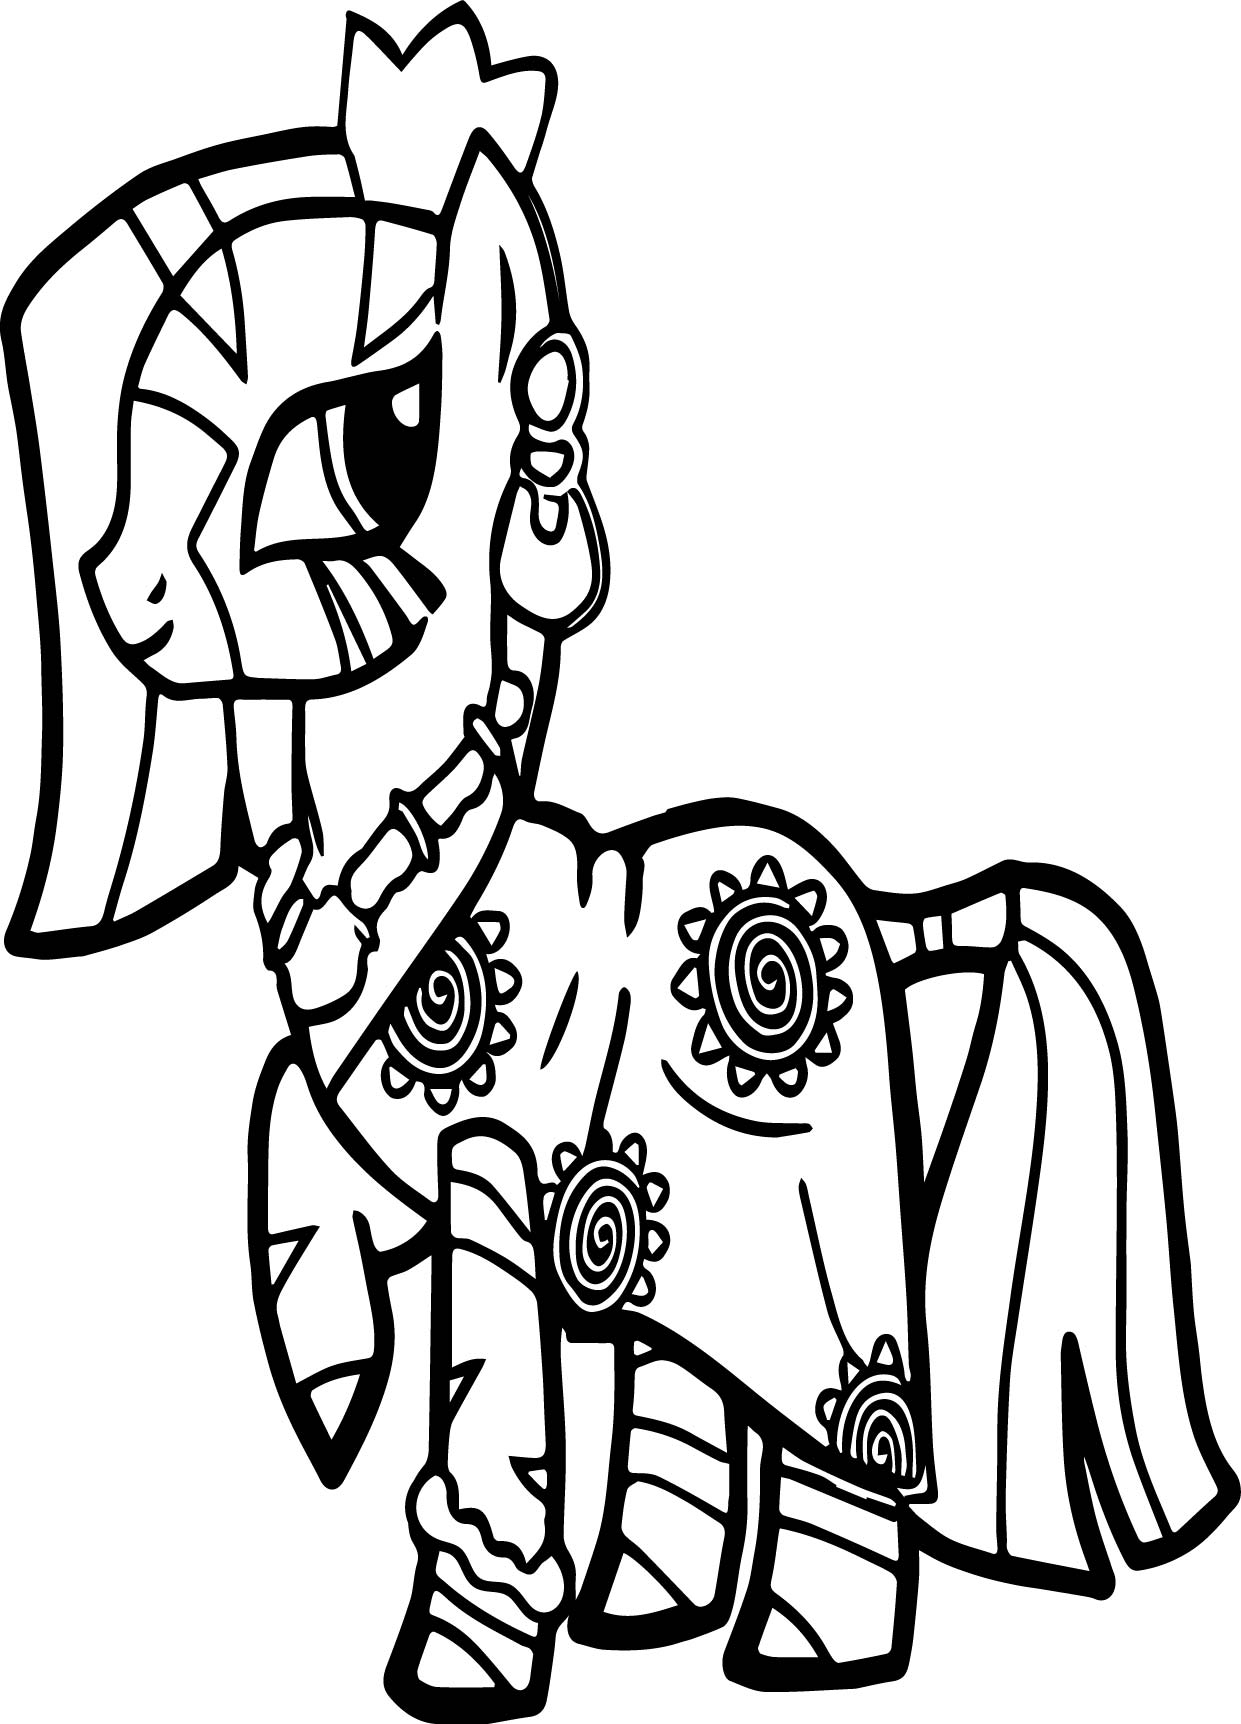 Zecora Gala Dress Coloring Page